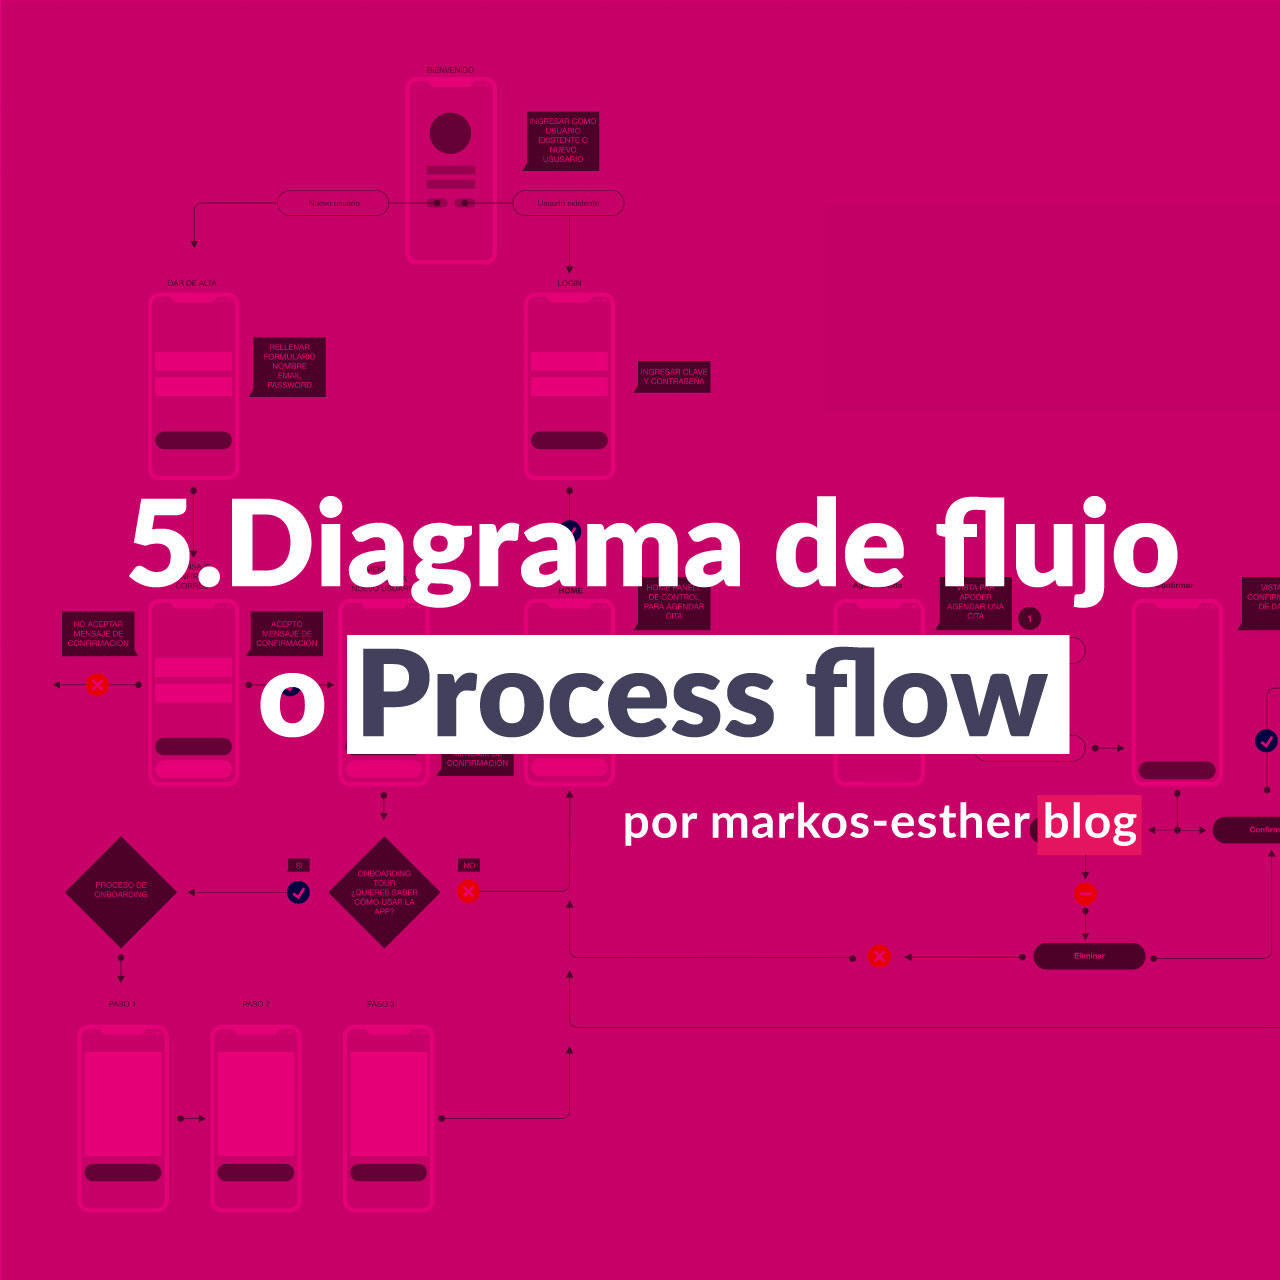 Diagrama de flujo o Process flow